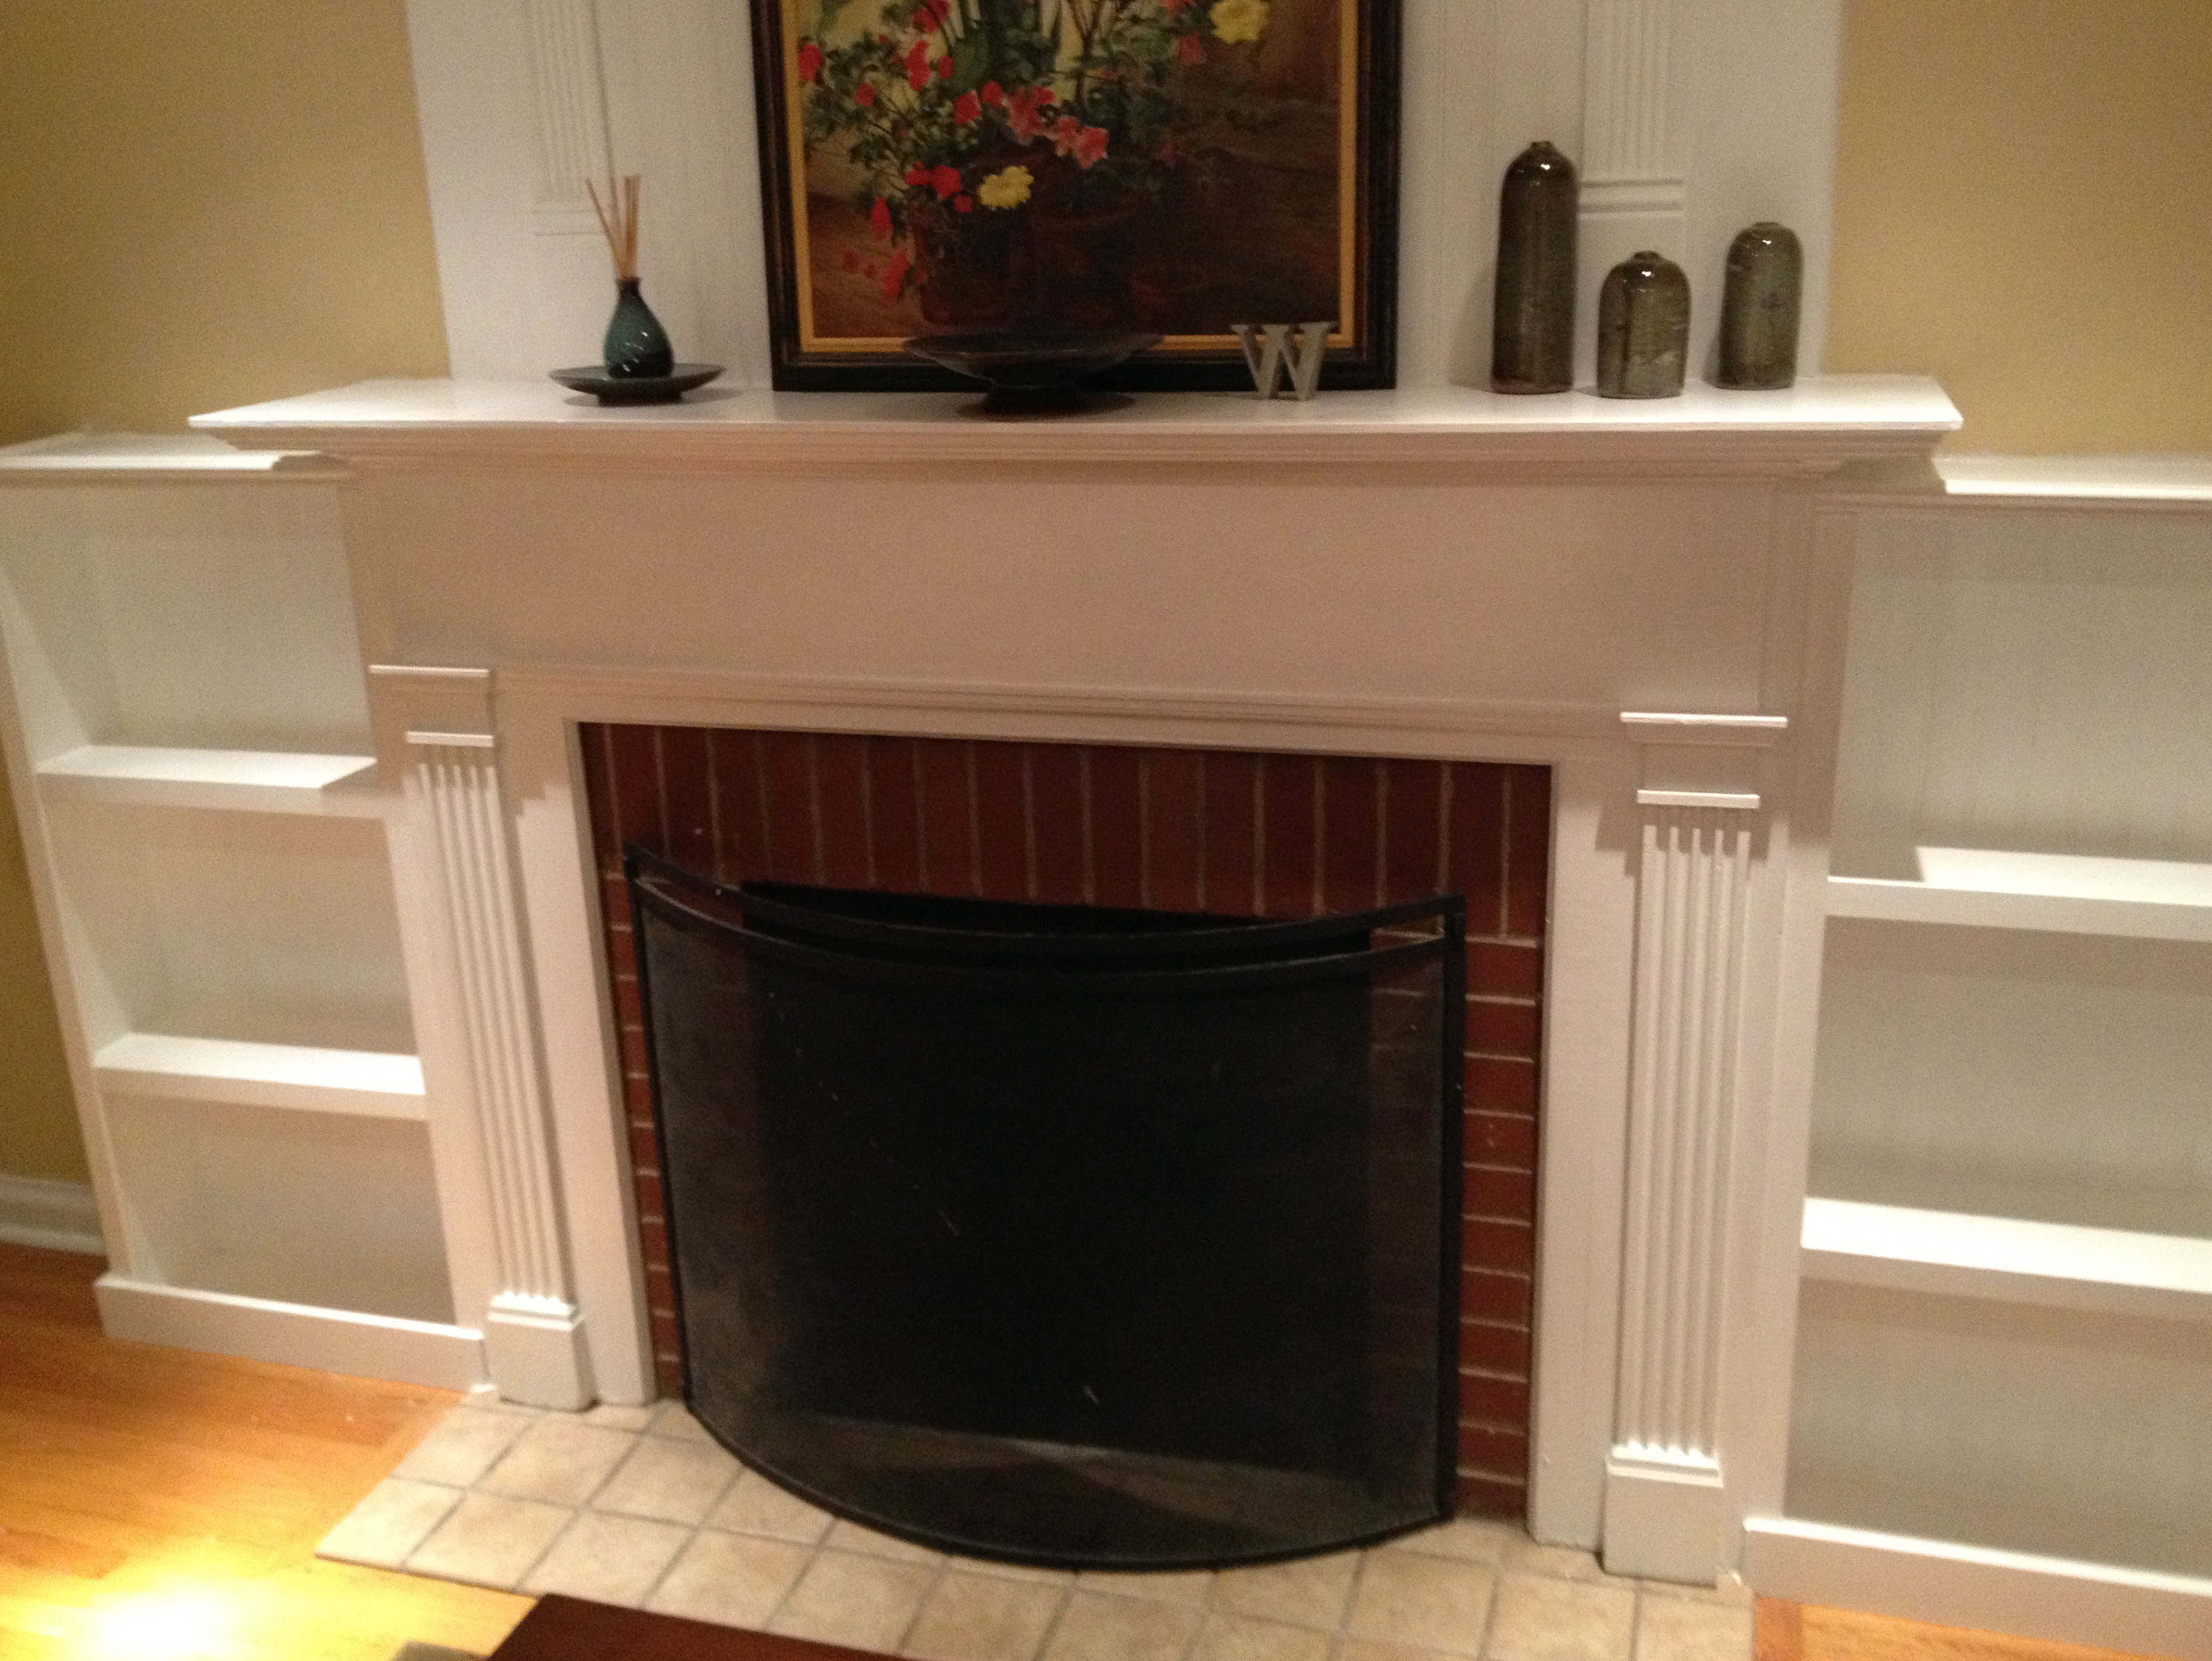 Permalink to Built In Bookshelves Around Fireplace Plans